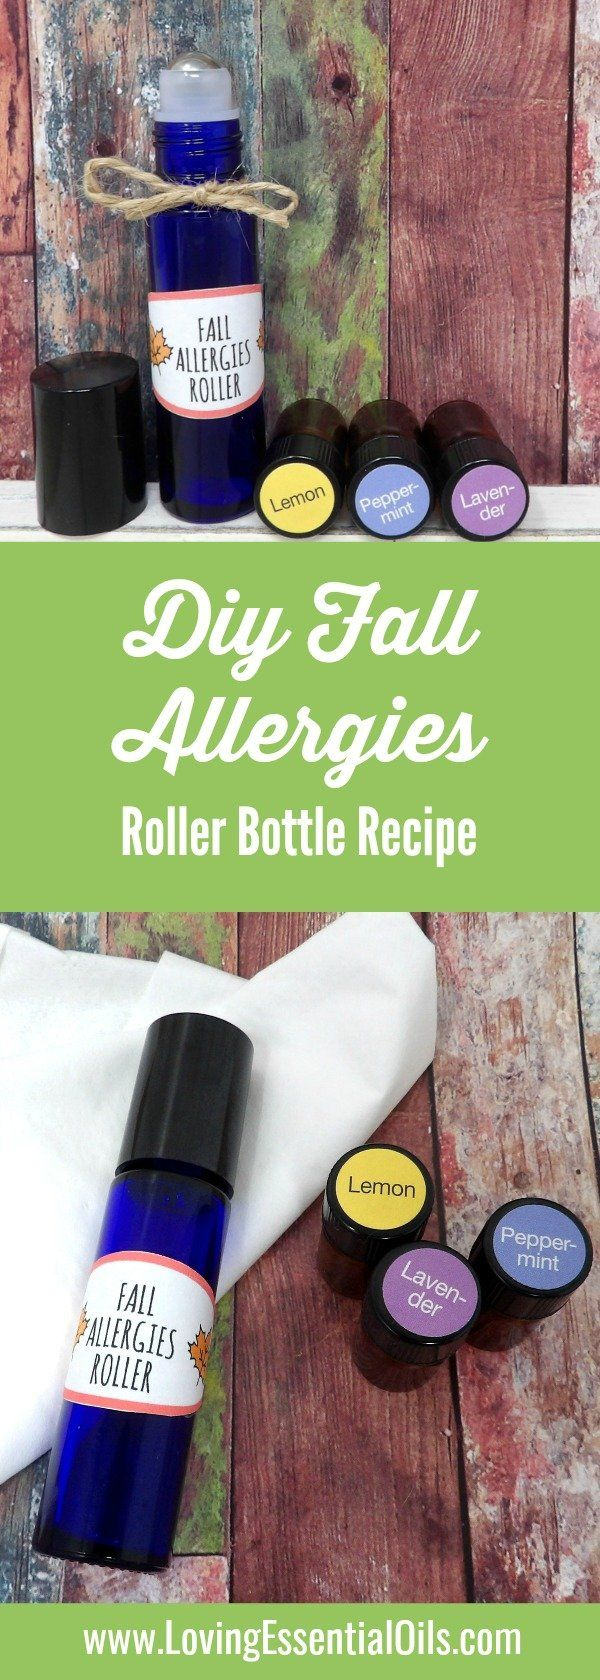 DIY Recipe - My favorite essential oils for fall allergies include lavender, peppermint and lemon. This blend of oils can help relieve the congestion, stuffiness, itchiness and sniffles that occurs from changing seasons. #fallallergies #essentialoils #diyrecipe